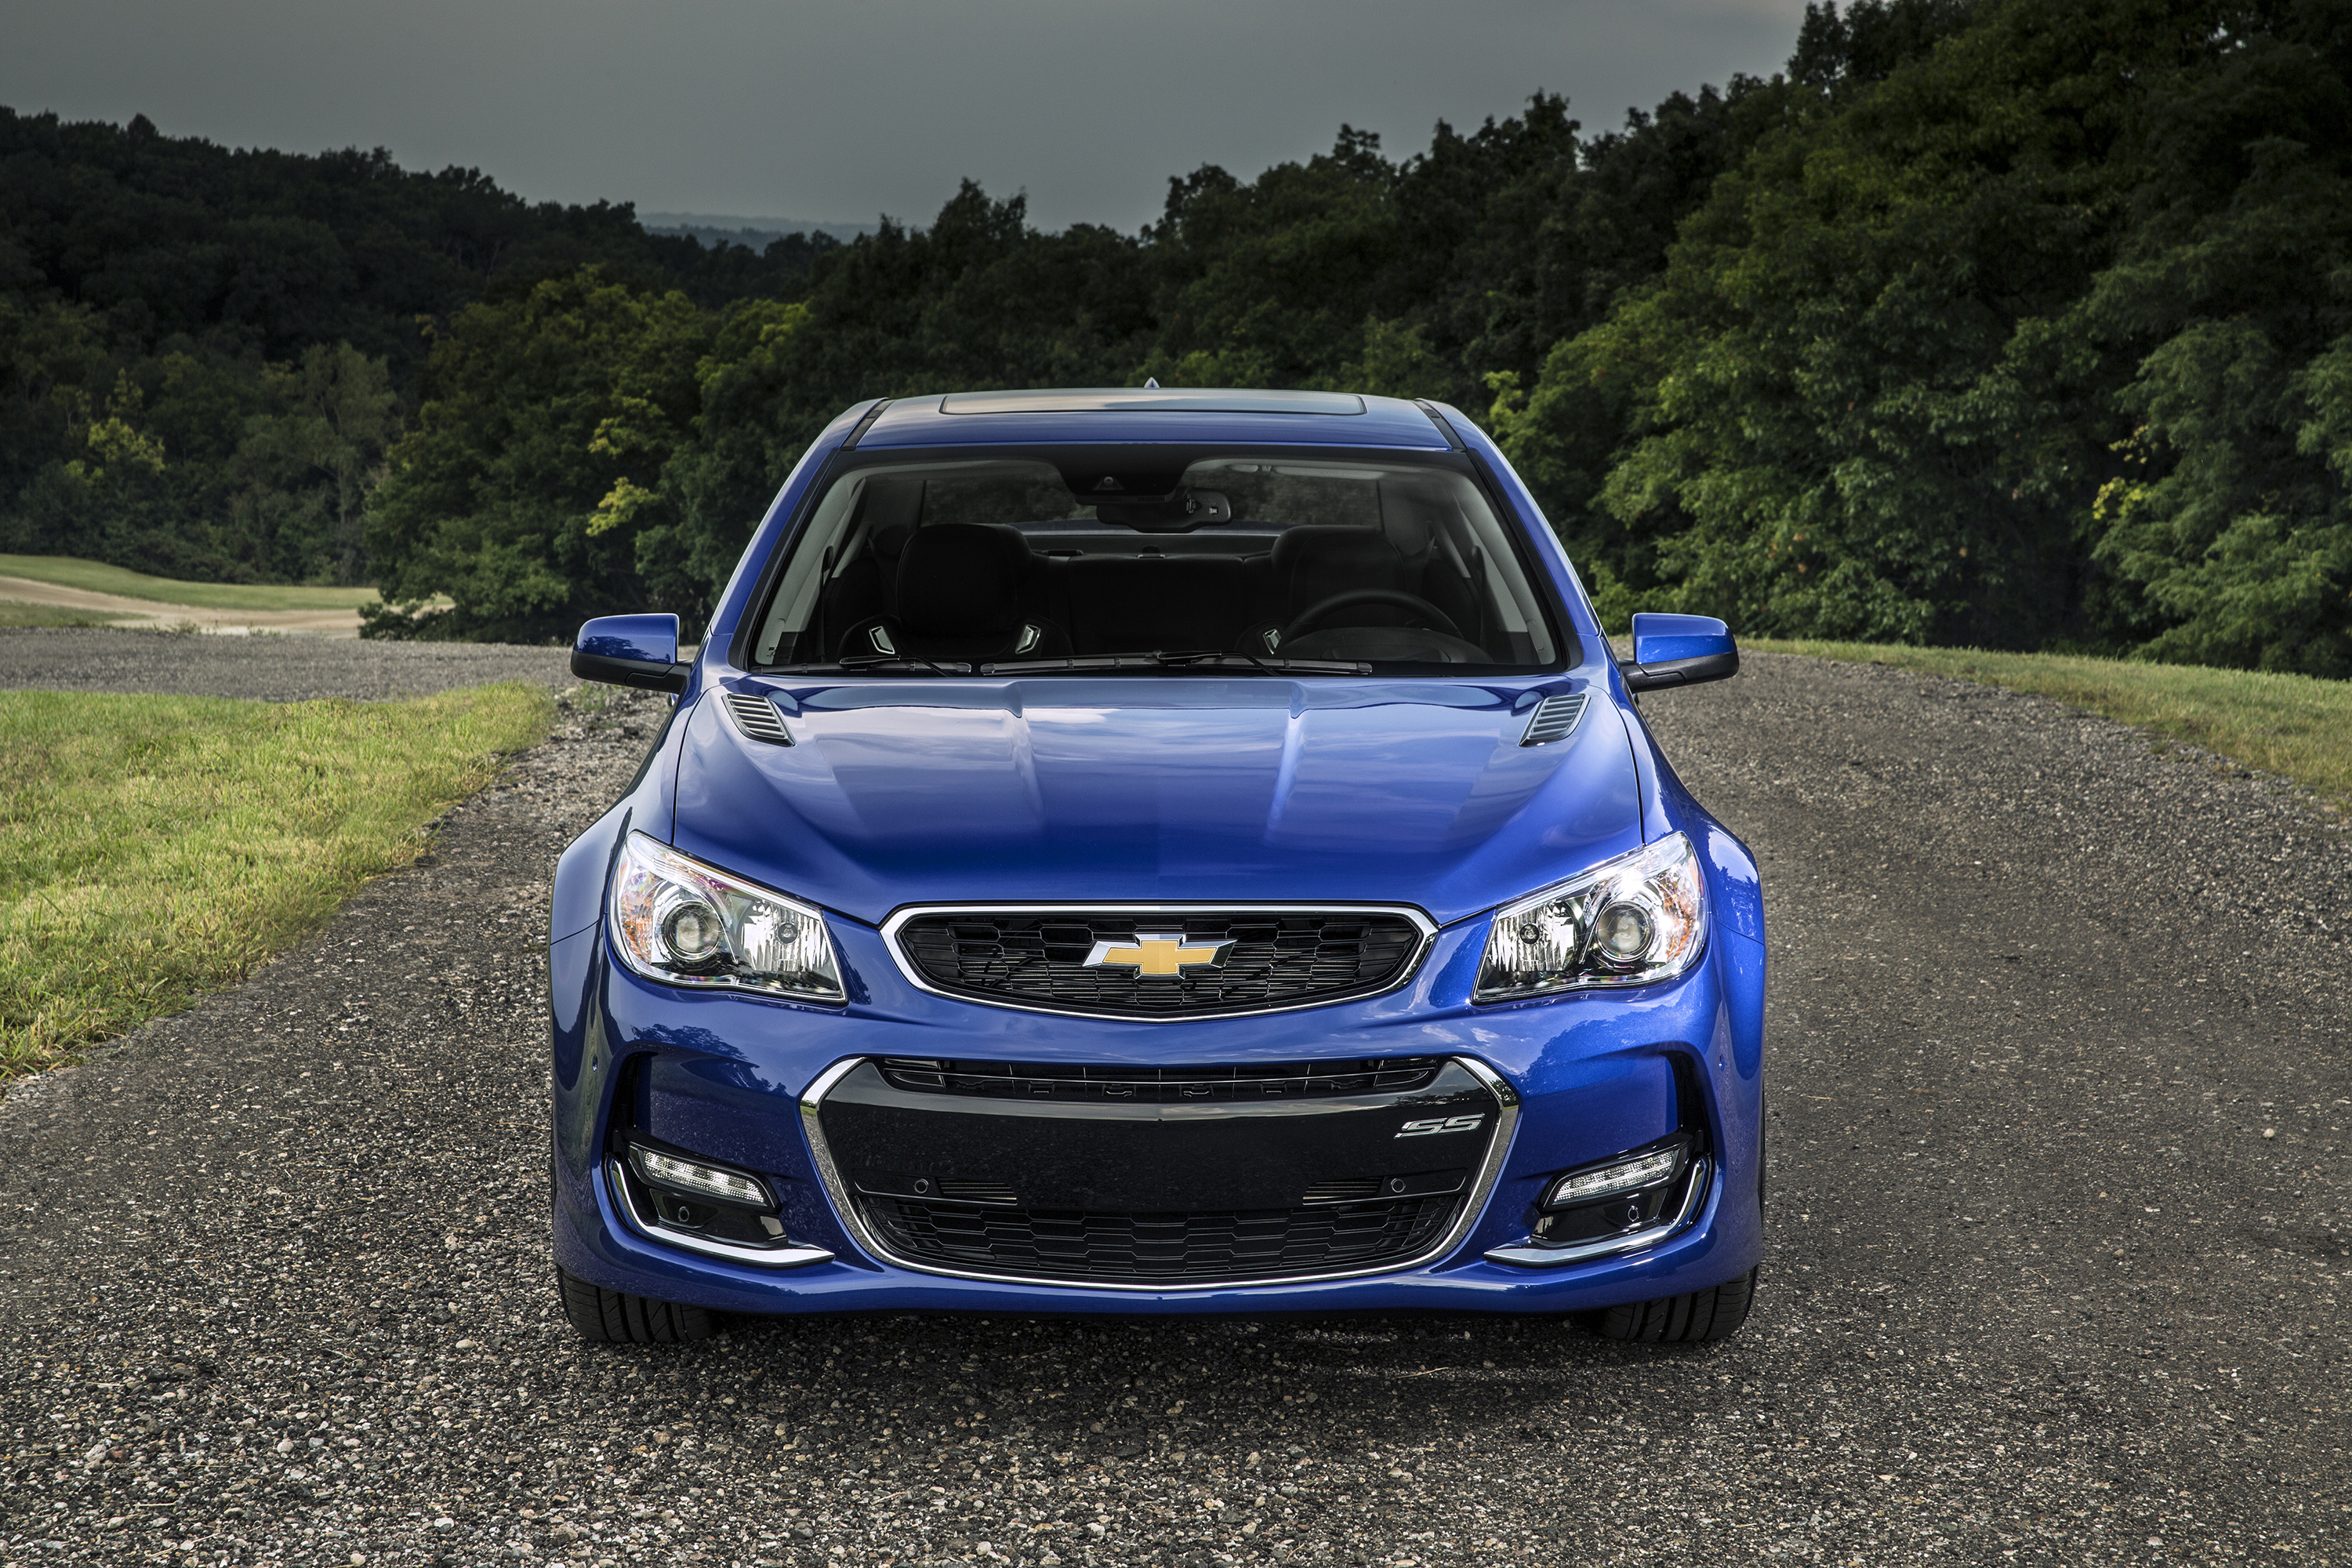 The 2016 Chevrolet SS sedan features several exterior enhancements that reinforce its commanding presence on the road. A revised front fascia features new, vertical ducts at the outer edges to direct airflow over the front wheel openings to improve aerodynamic efficiency. The fascia also incorporates new LED signature lighting, while new, functional hood vents and new-design 19-inch cast-aluminum wheels contribute to a stronger appearance for the rear-drive sports sedan.